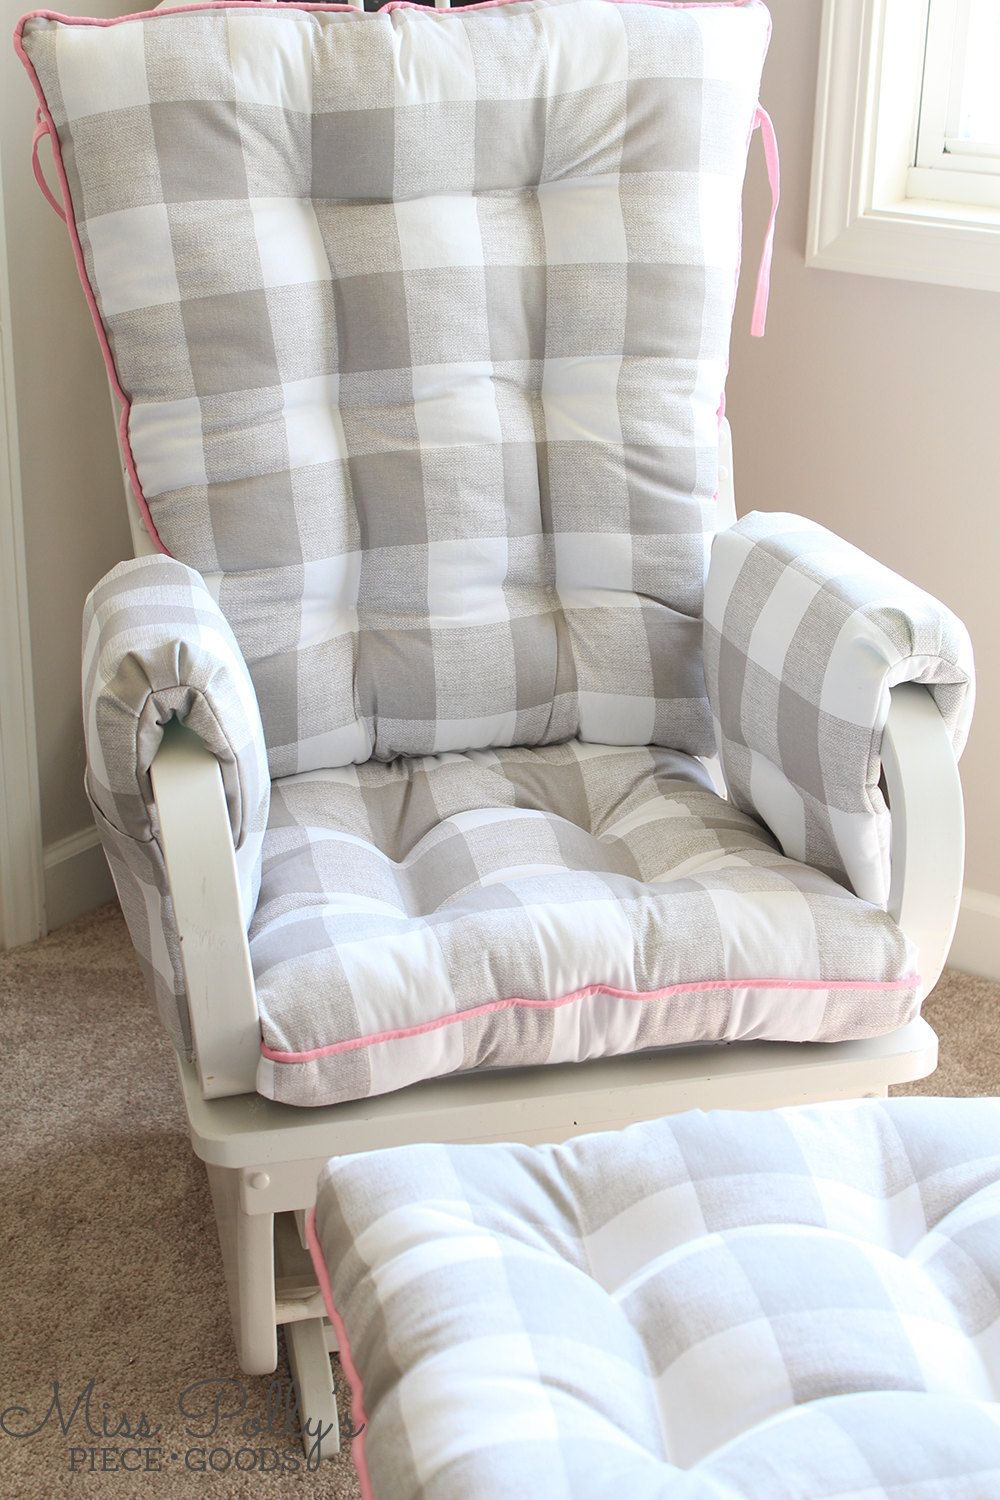 Glider or rocking chair cushions in fabrics you choose are